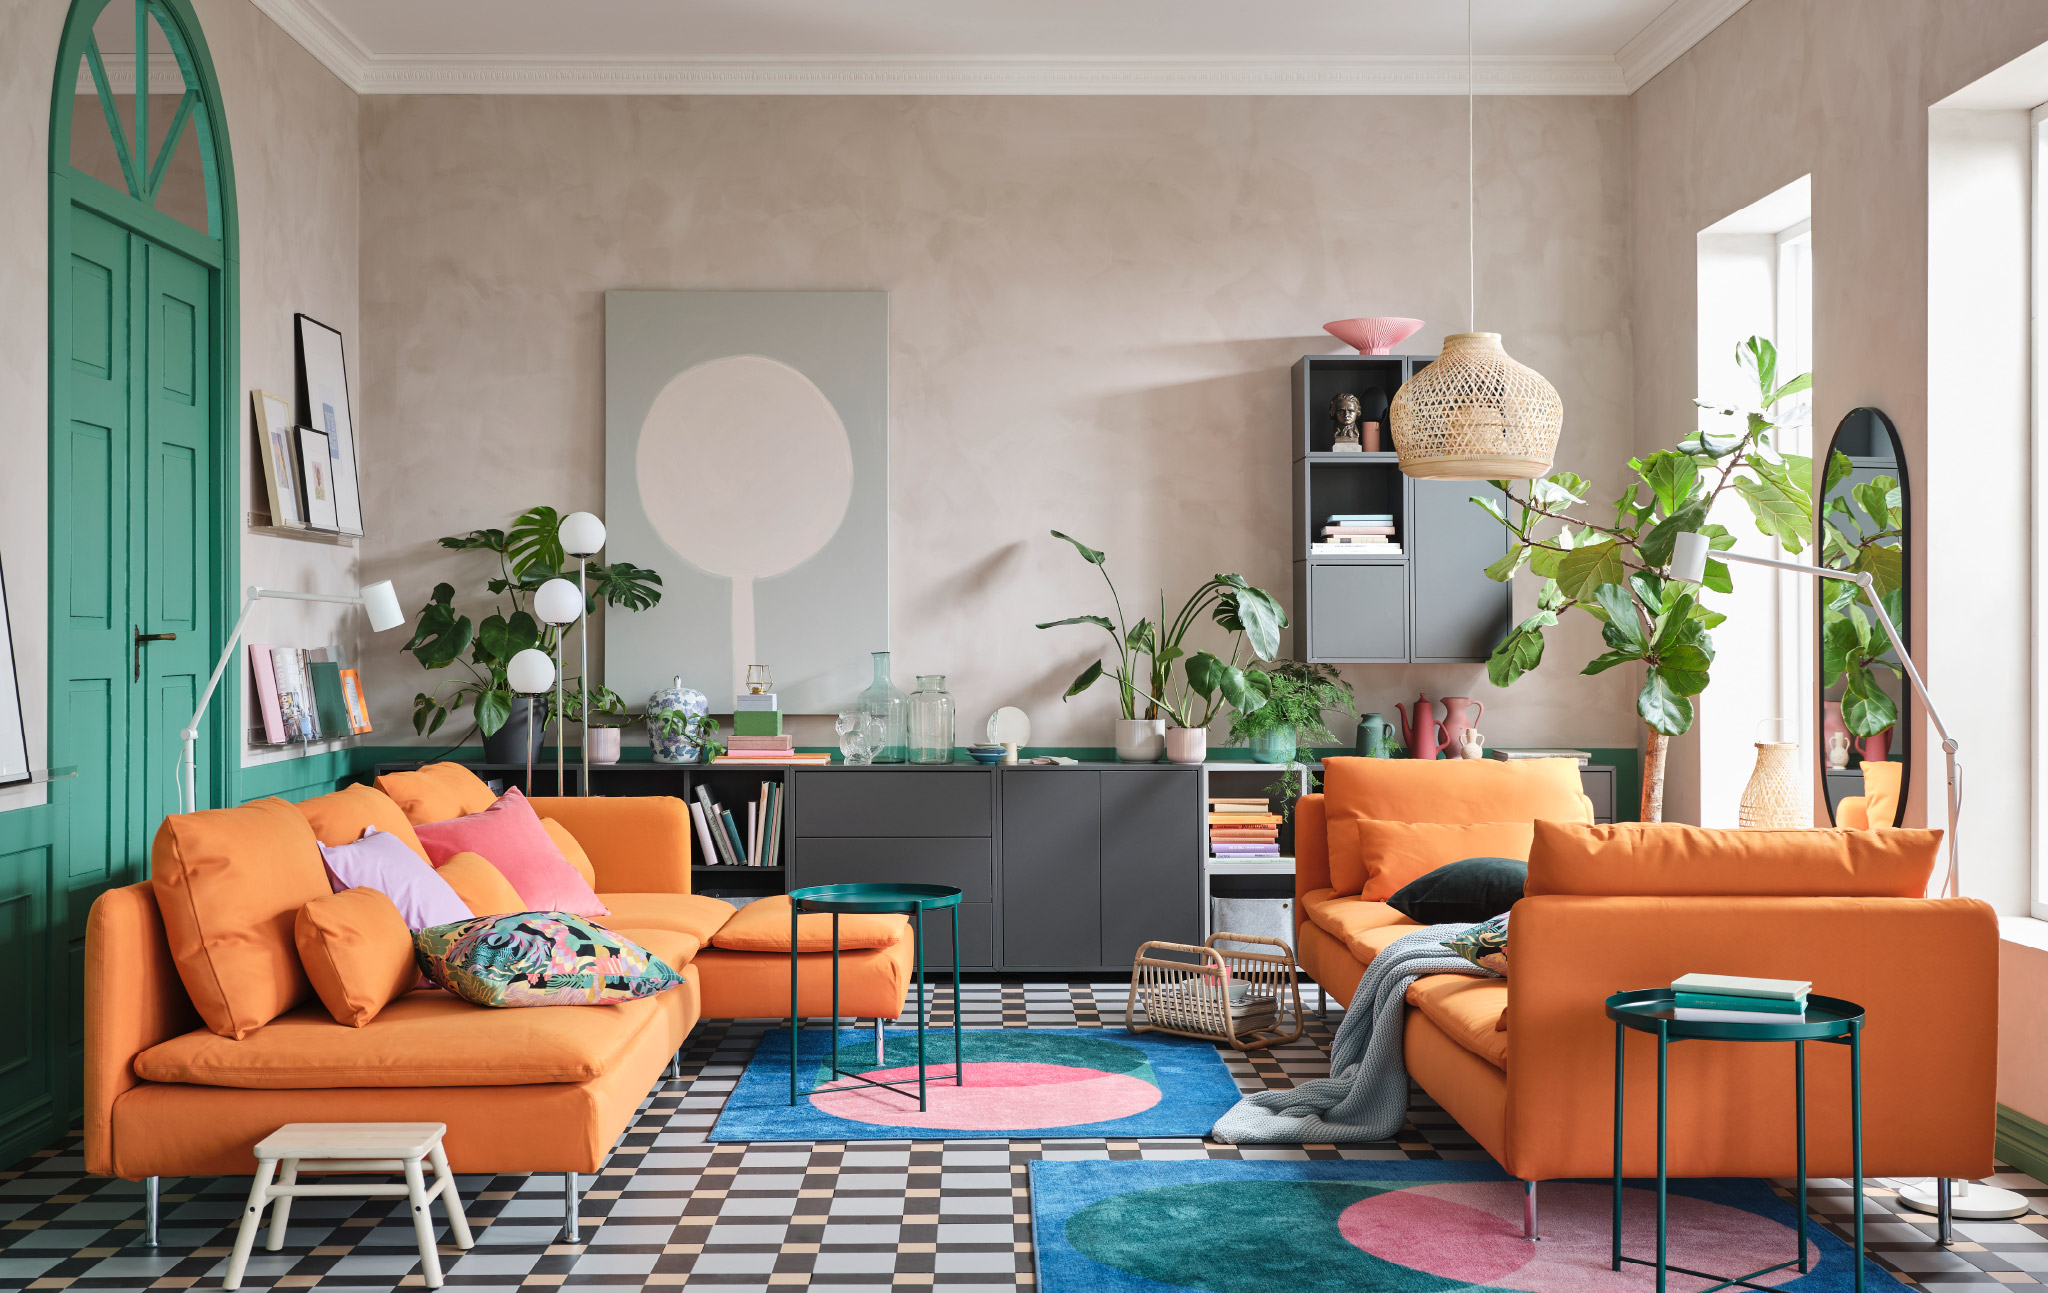 A living room with a sofa and chaise longues in orange, a cabinet combination in grey, colourful rugs and green tray tables.